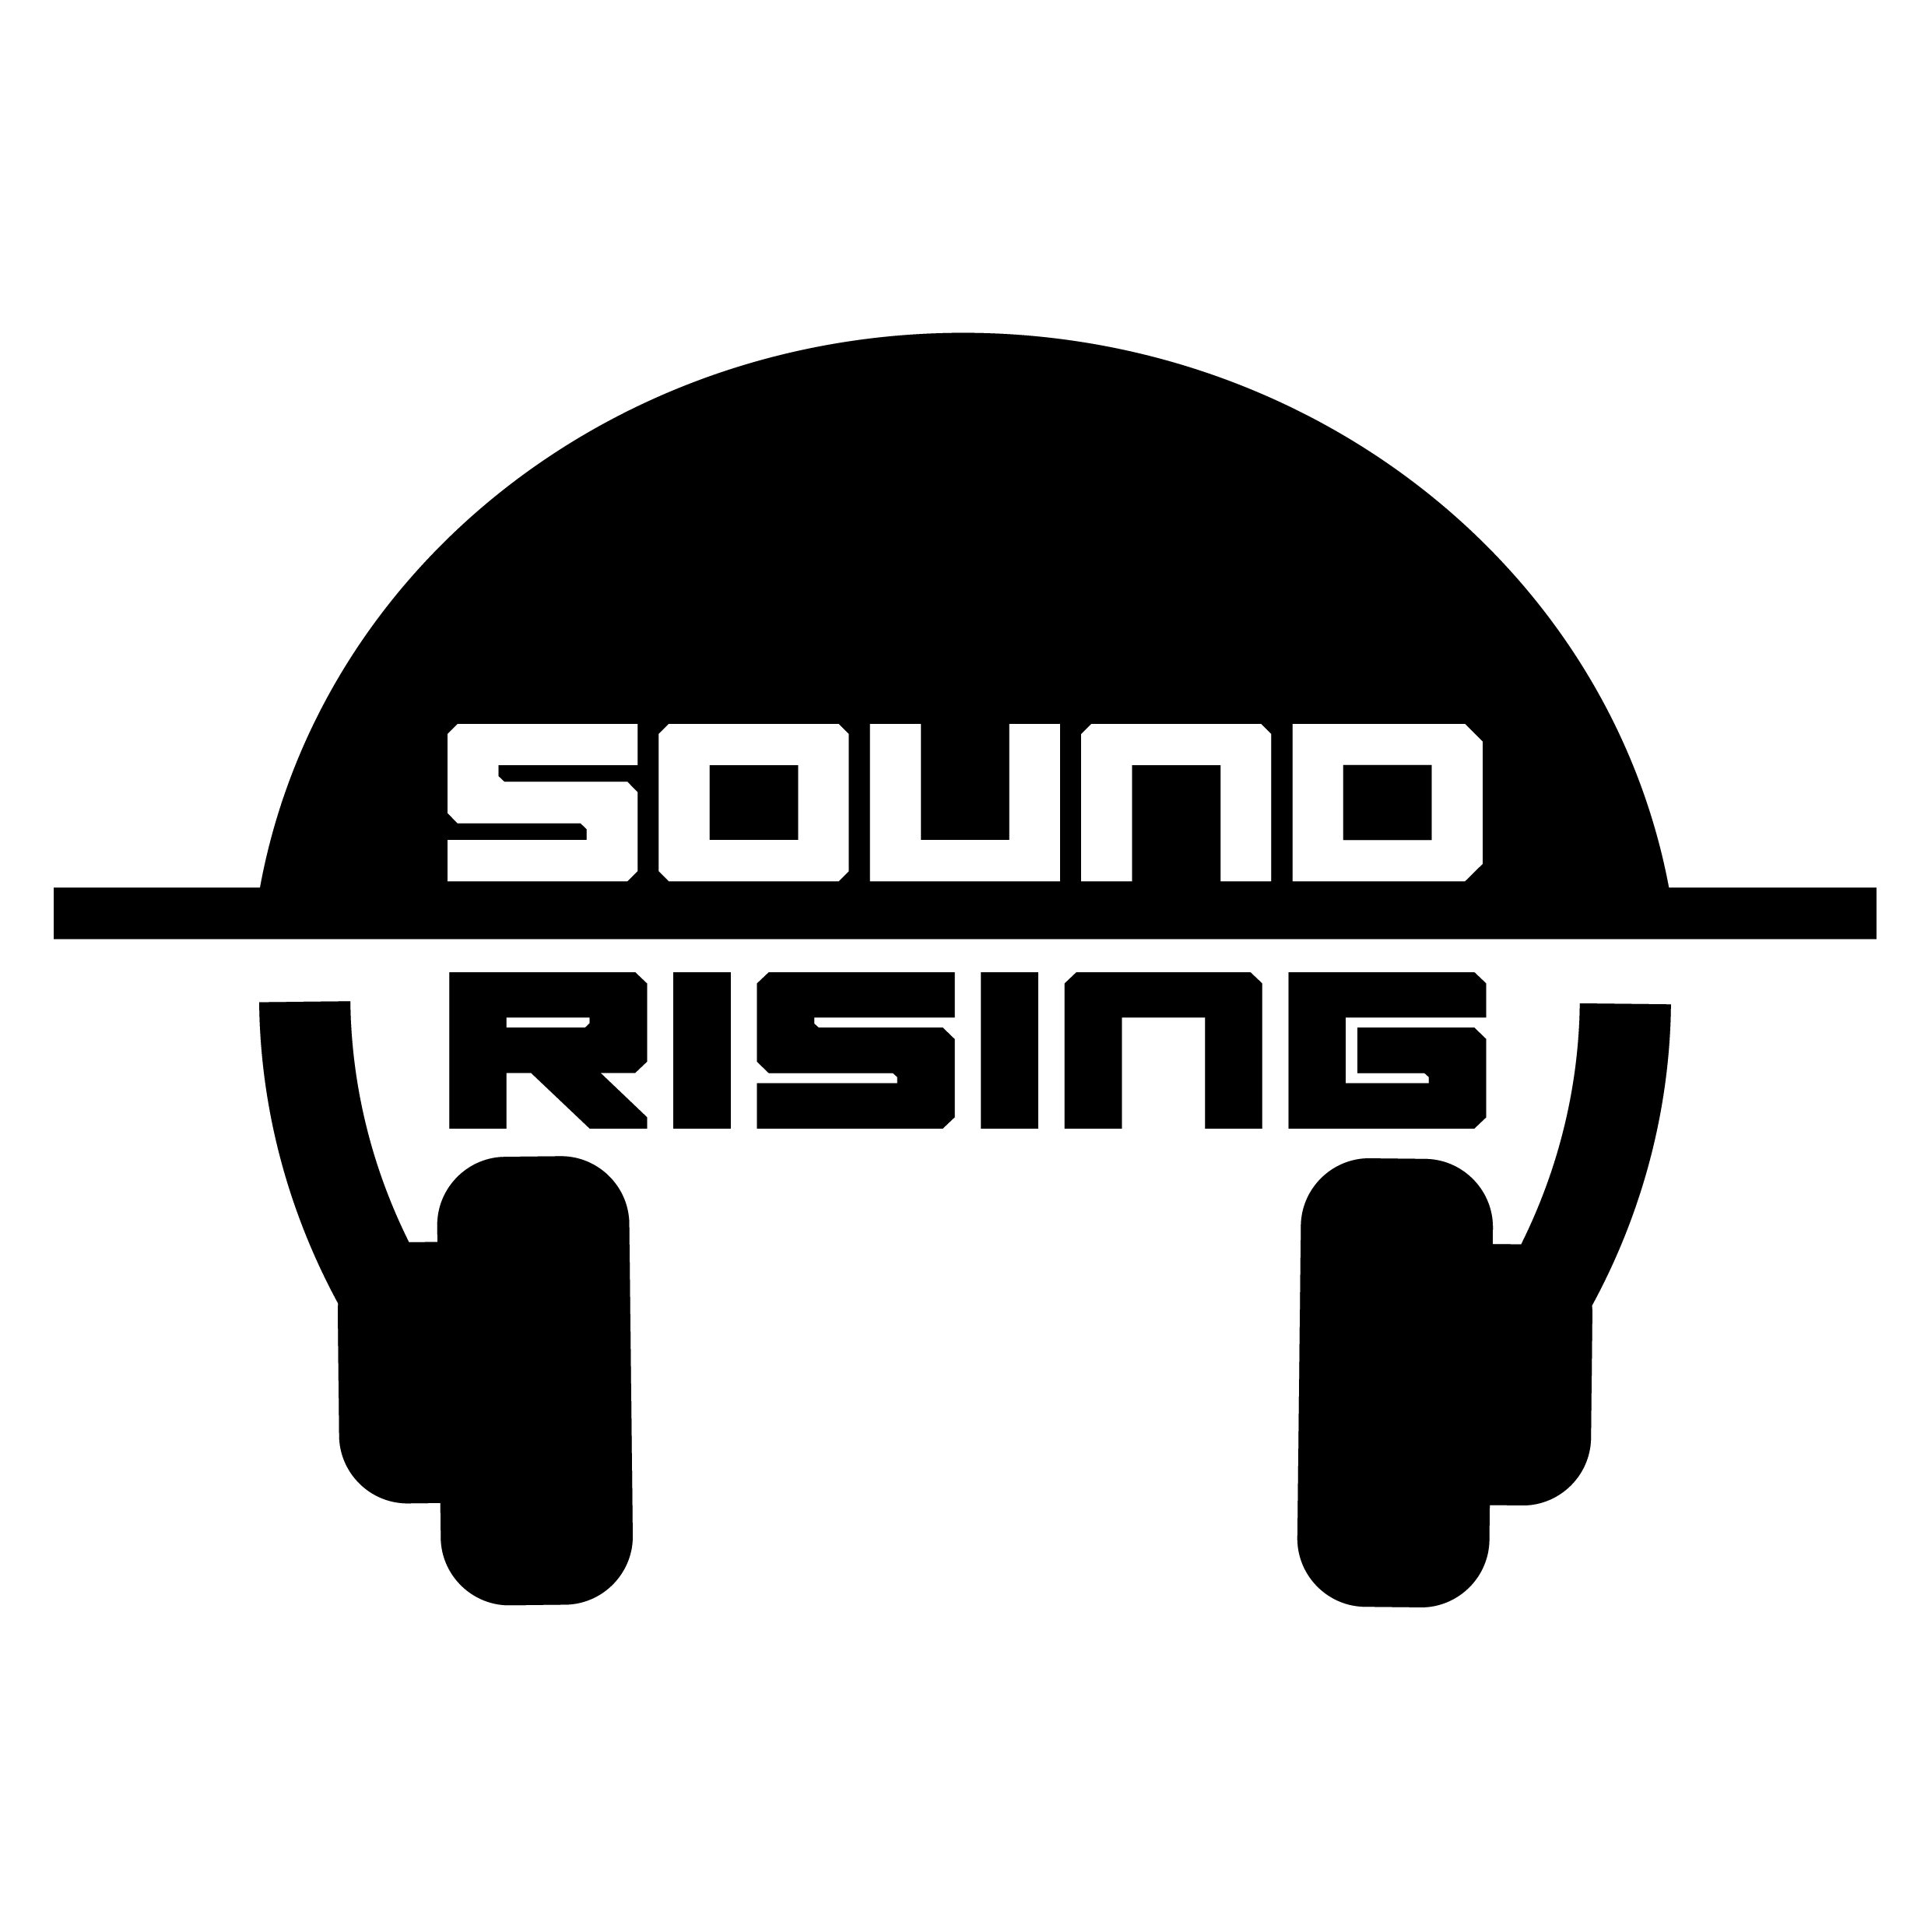 logo-soundrising-travelzik